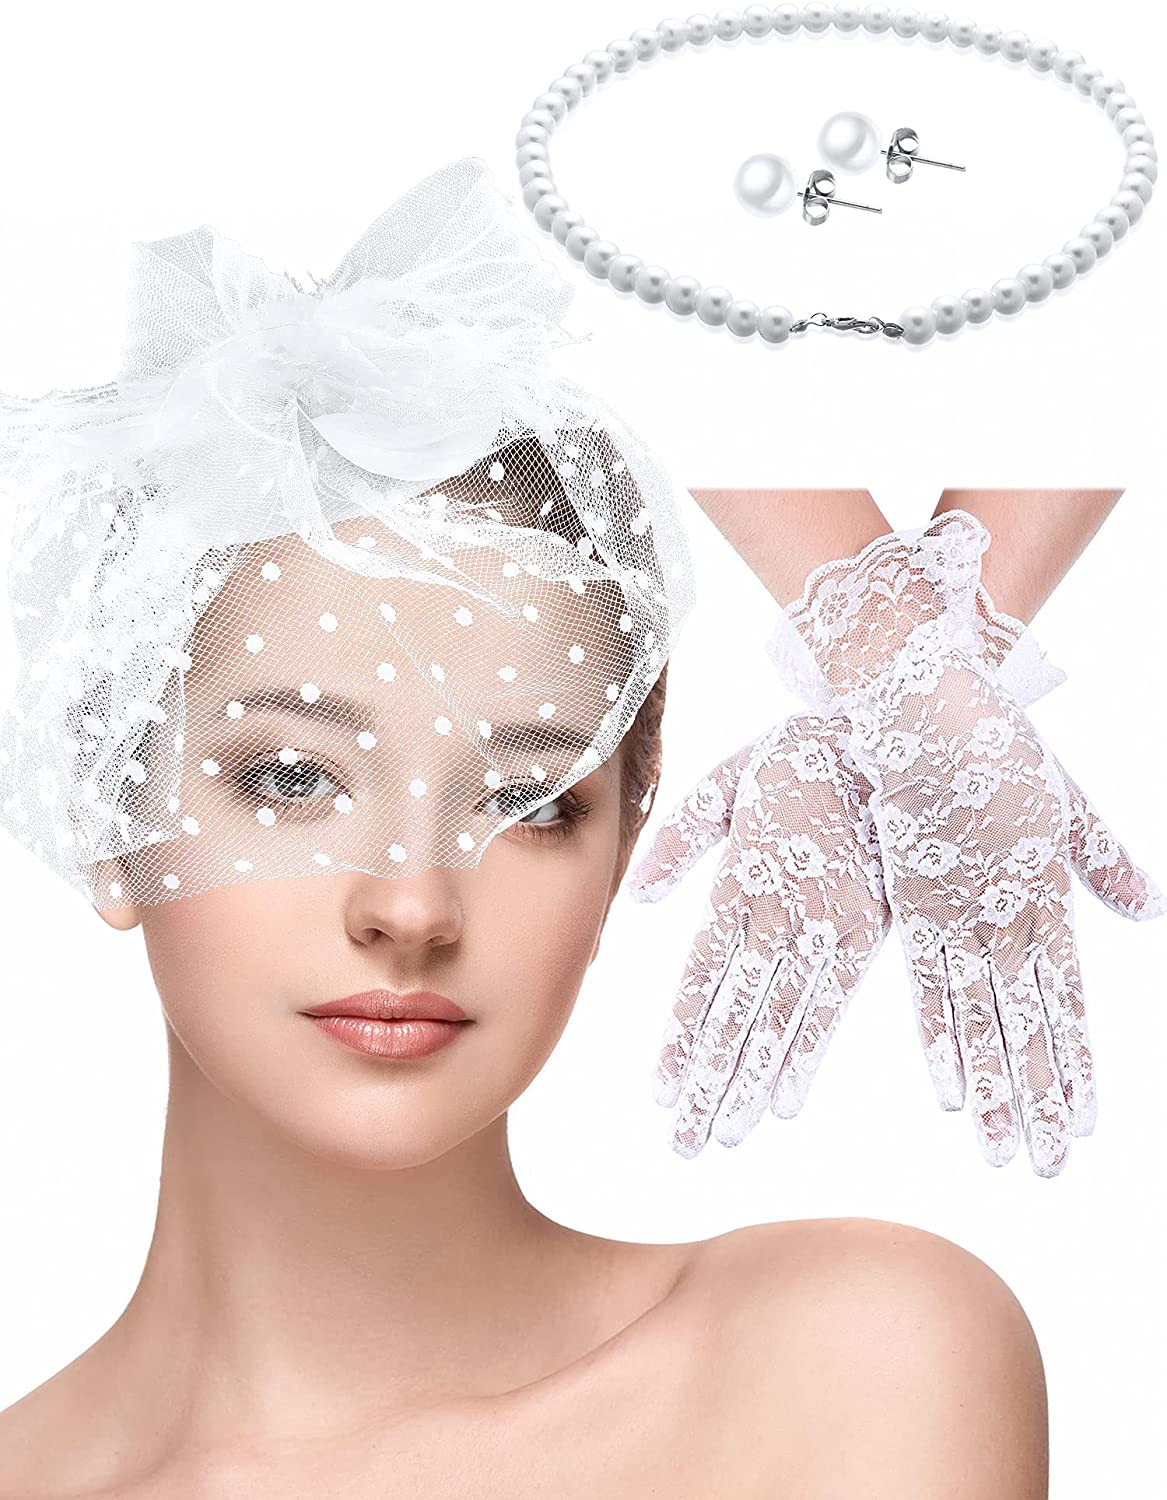 4 Pieces Fascinators Hat Veil Mesh Headband and Short Lace Gloves for Women